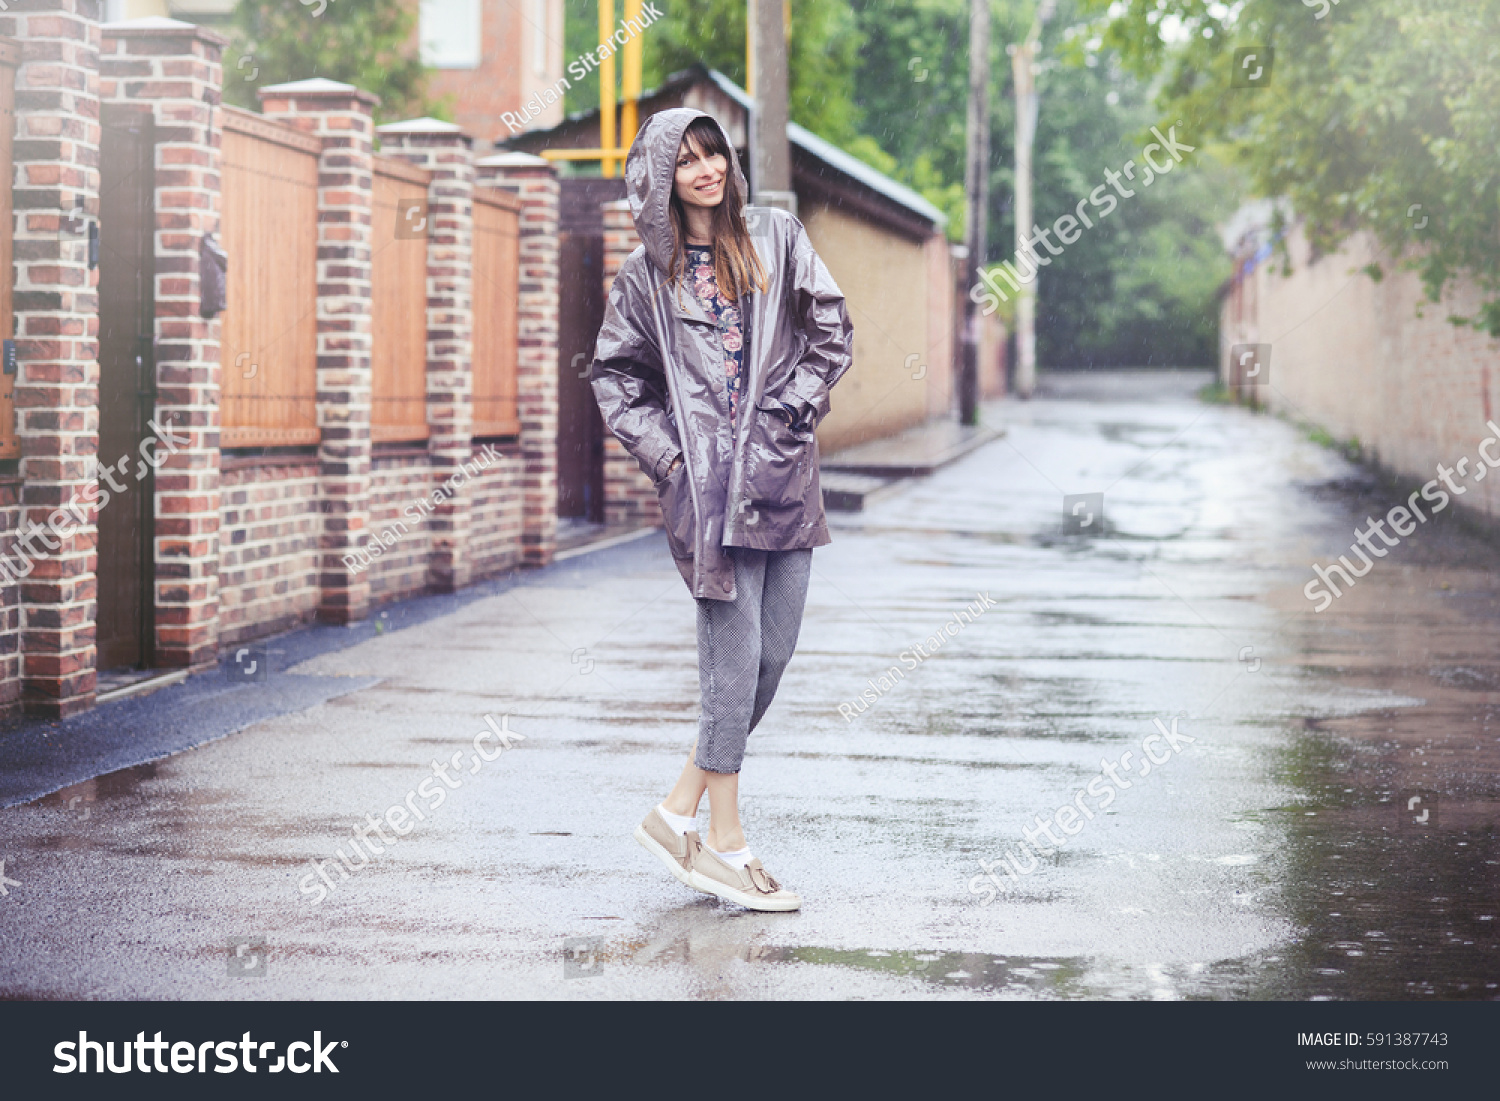 Do you like to walk in the rain without an umbrella  Quora